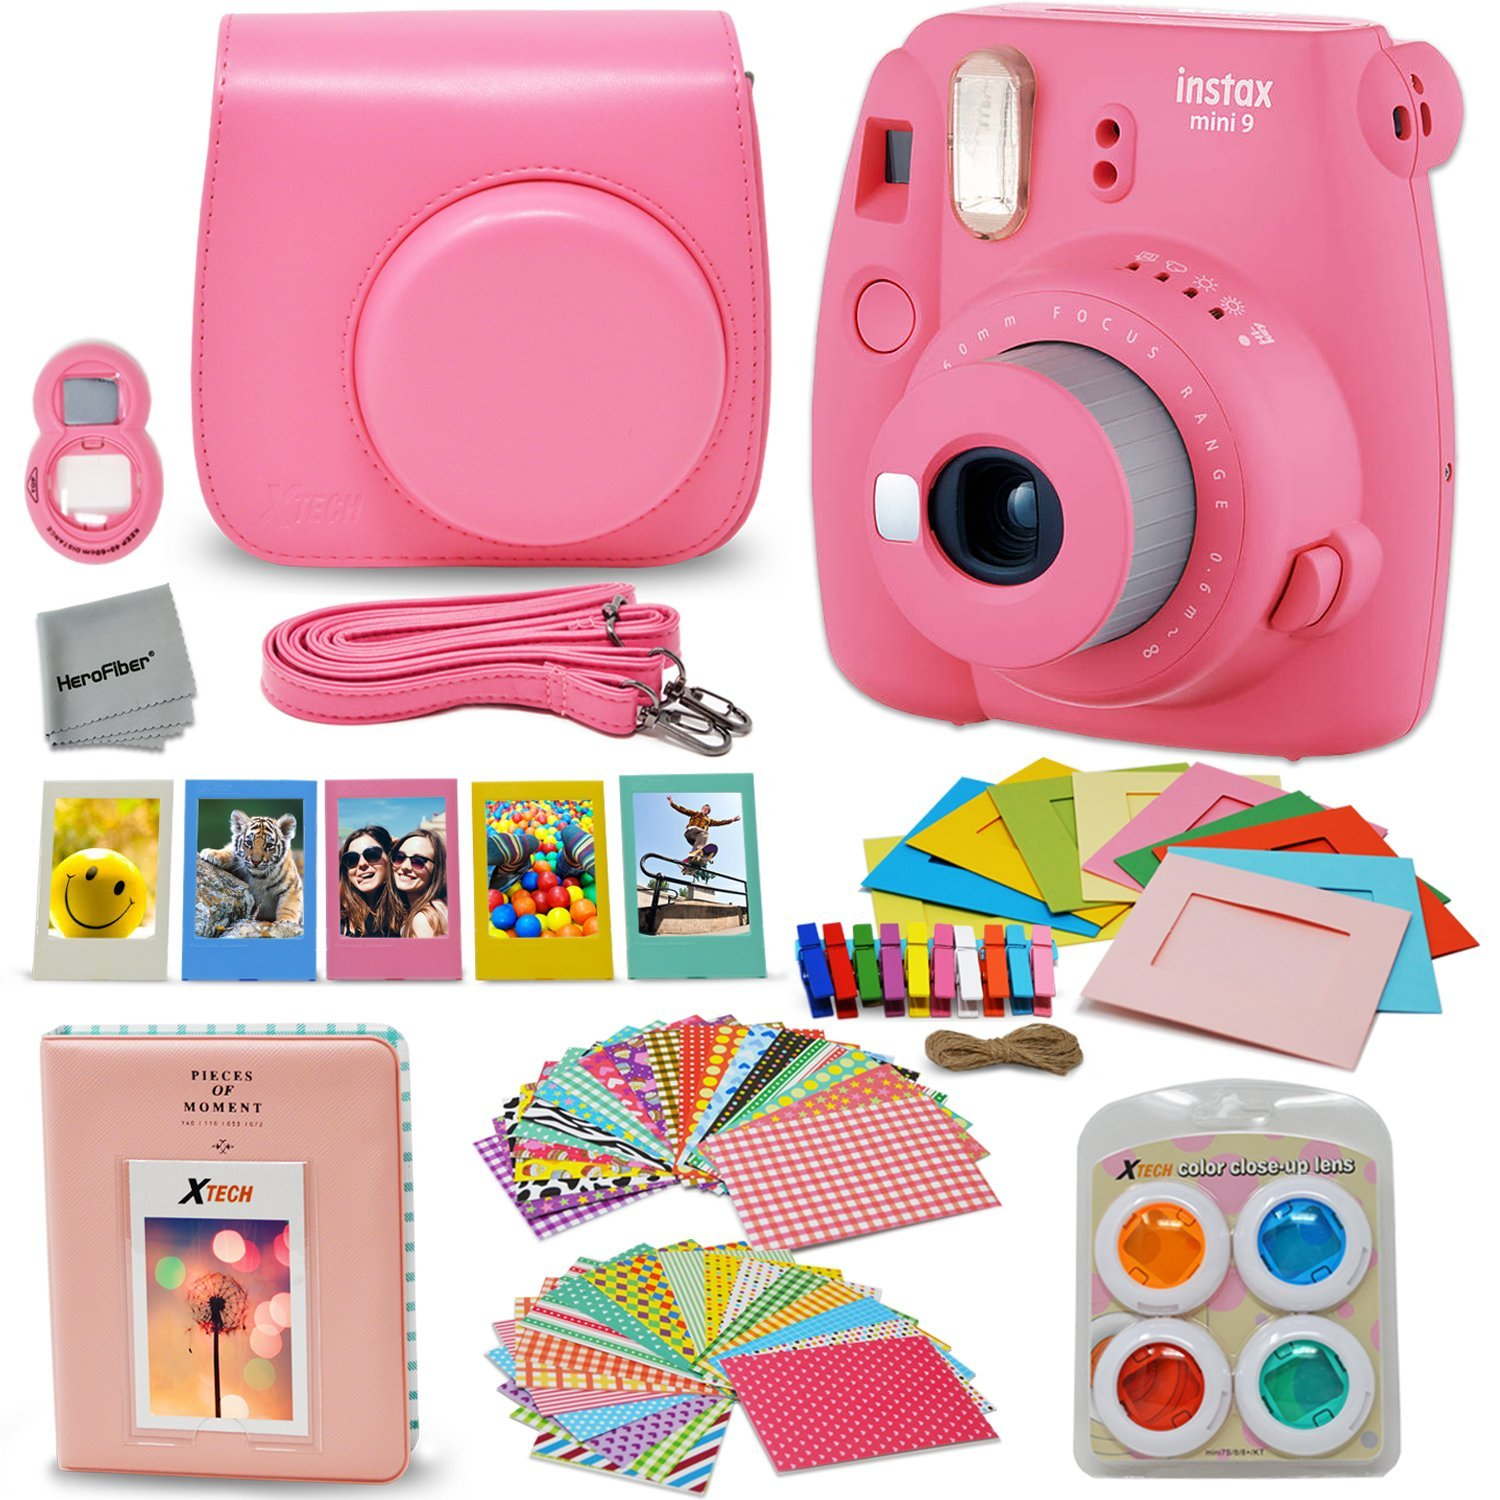 Fujifilm Instax Mini 9 Instant Fuji Camera (FLAMINGO PINK) + Accessories Bundle + Custom Matching Case w/Neck Strap + Photo Album + Assorted Frames + 4 Color Filters + 60 Sticker Frames + MORE by HeroFiber